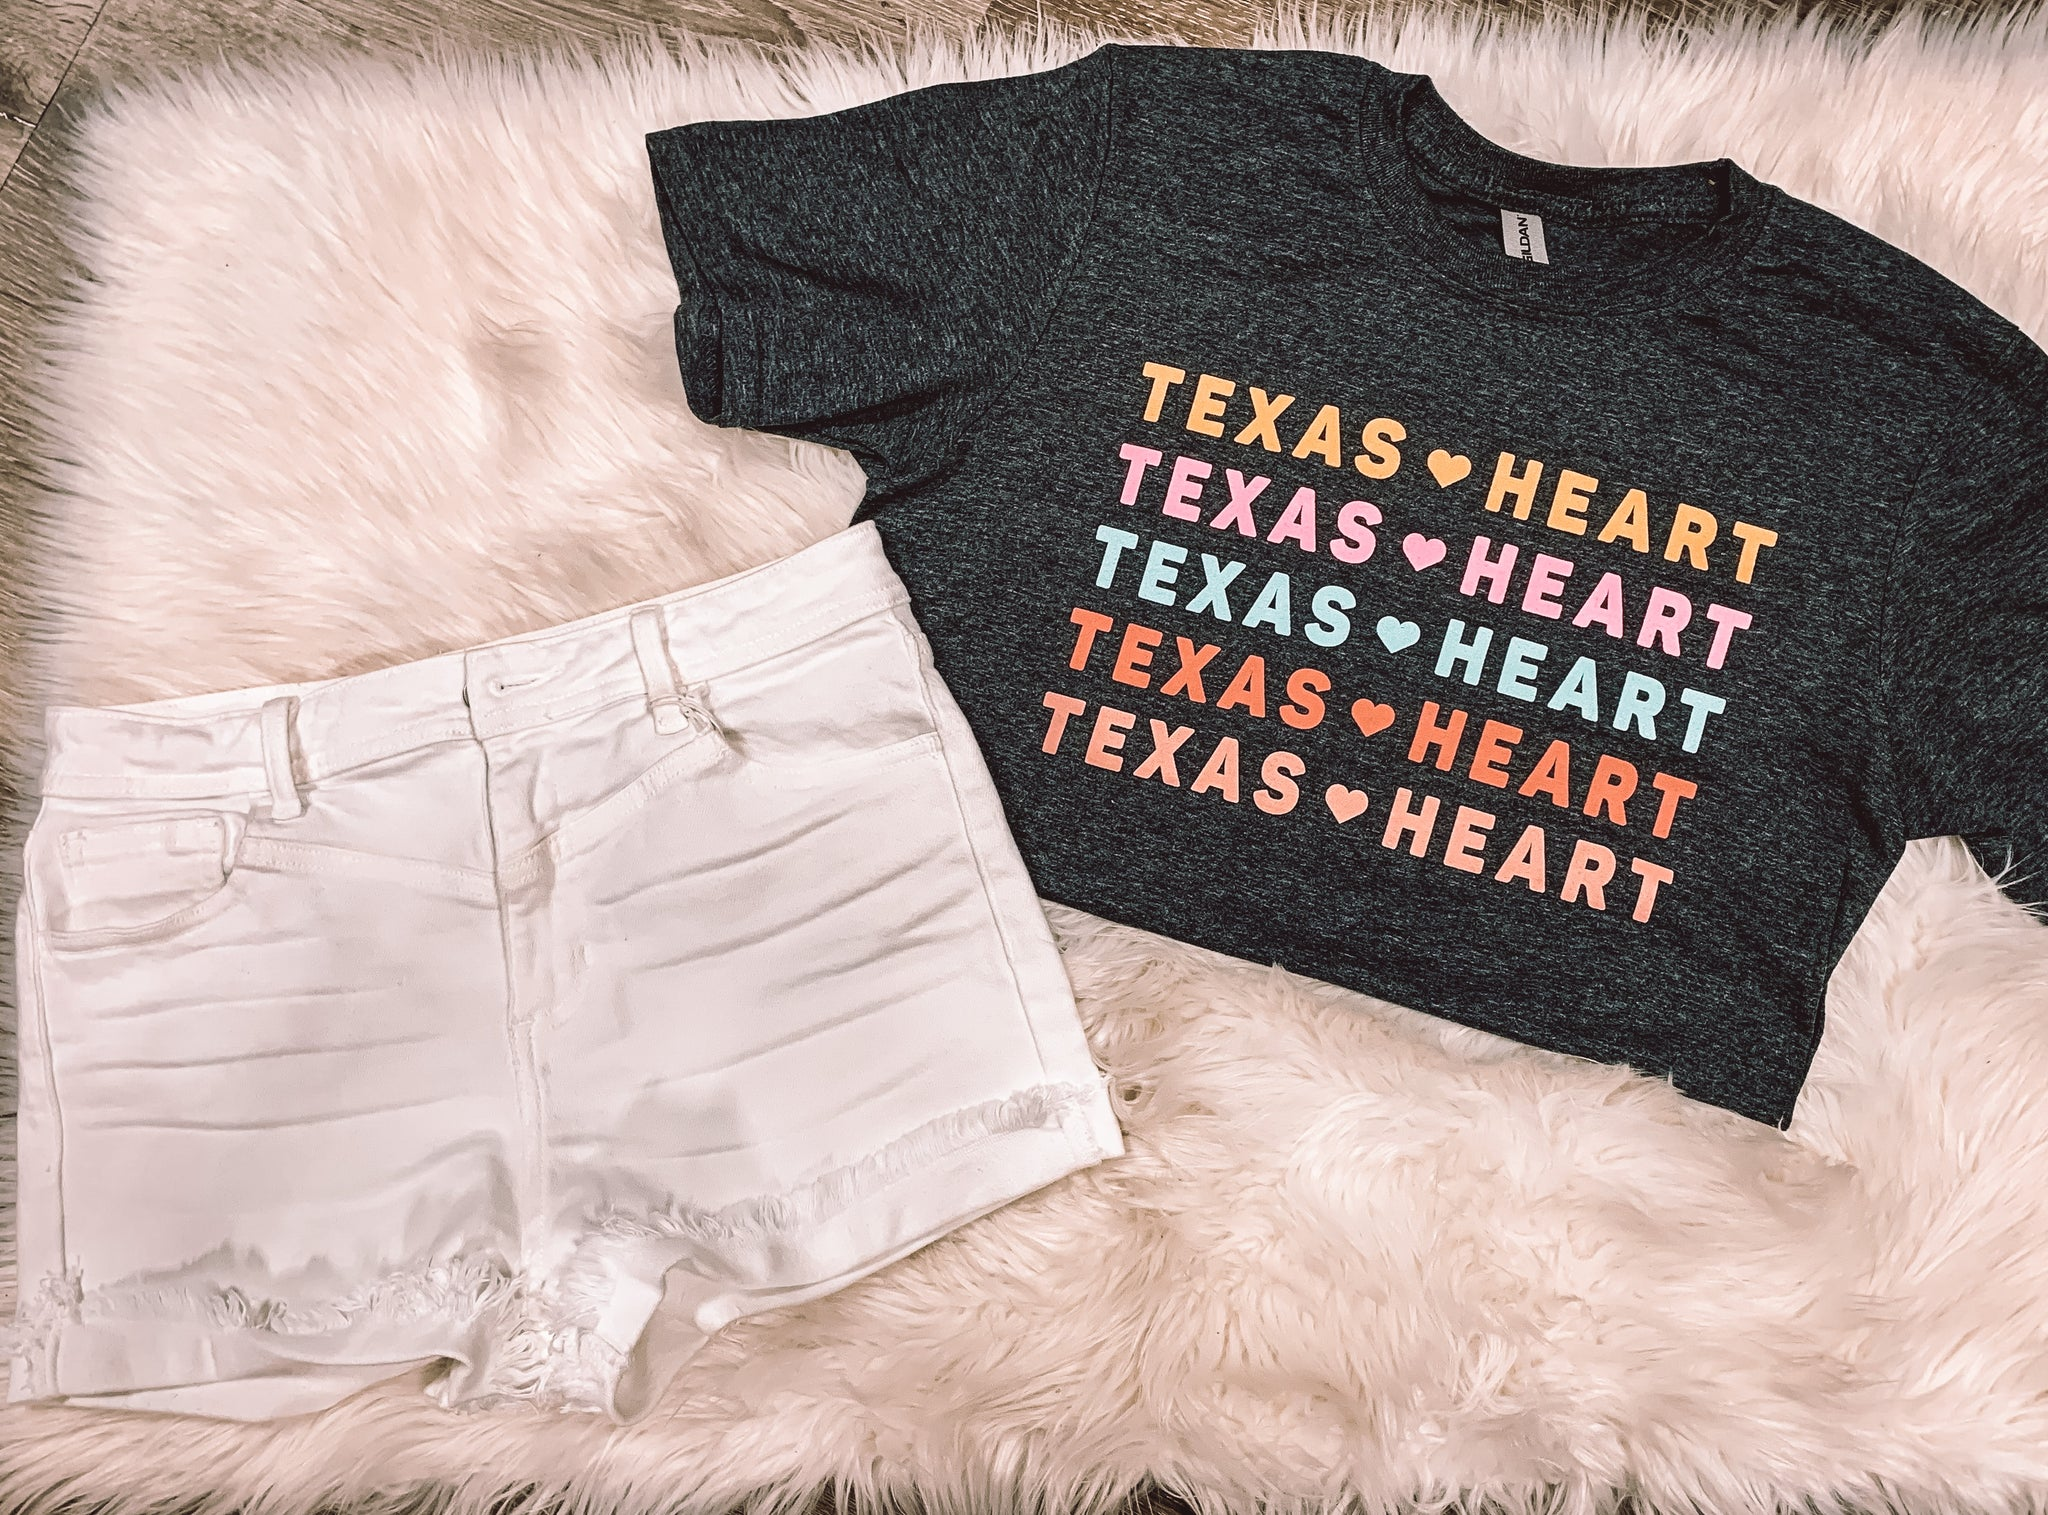 Texas heart logo tee